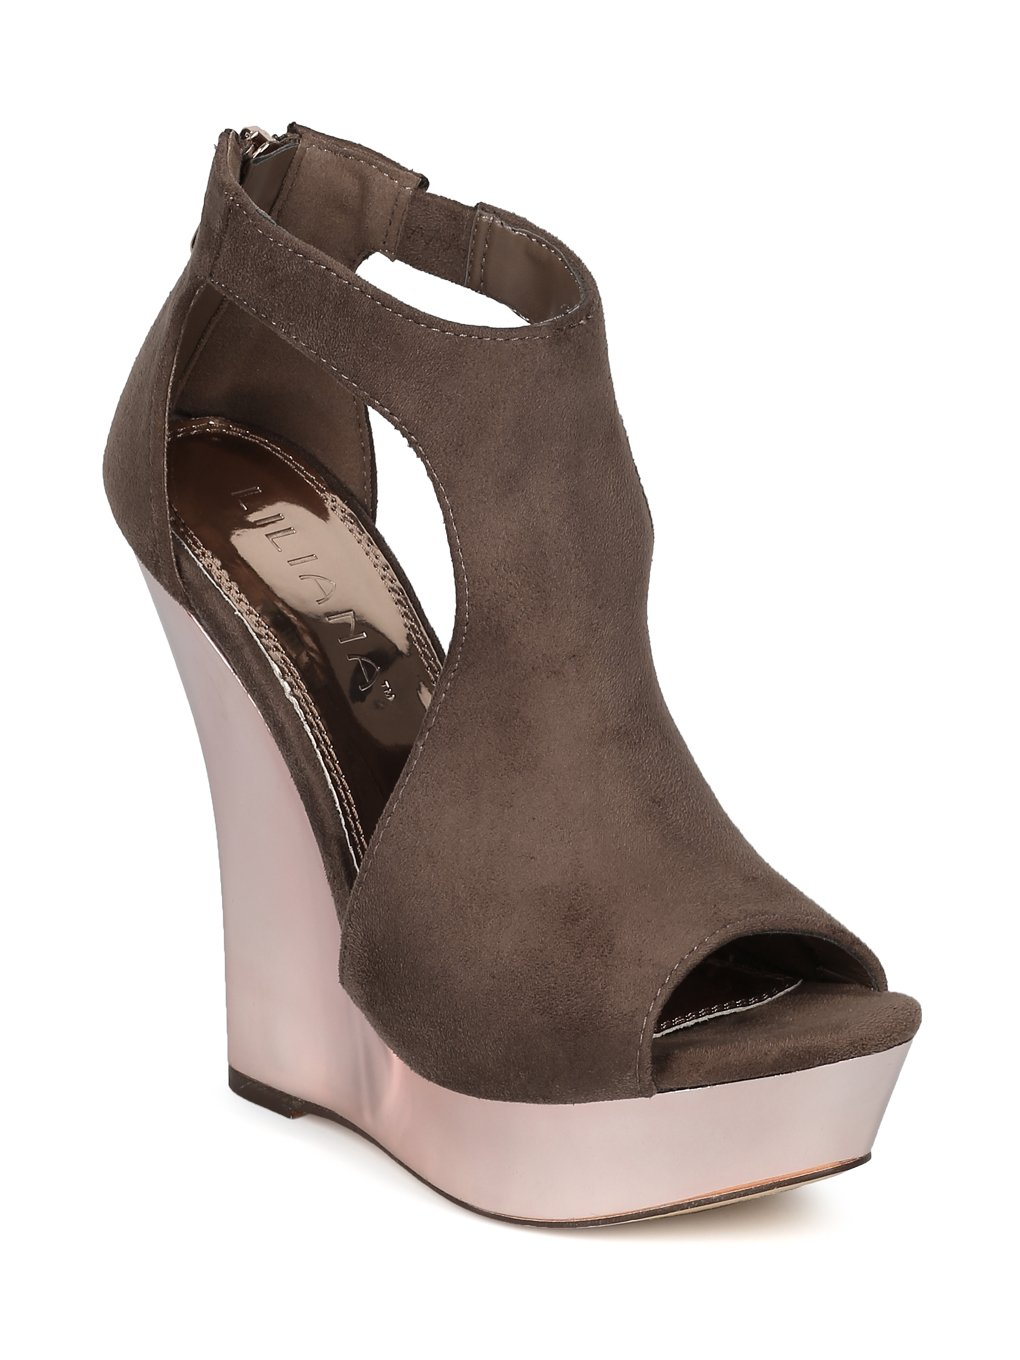 Alrisco Women Faux Suede Peep Toe Cut Out Metallic Platform Wedge Sandal HE07 B07555TK1C 8.5 M US|Taupe Faux Suede